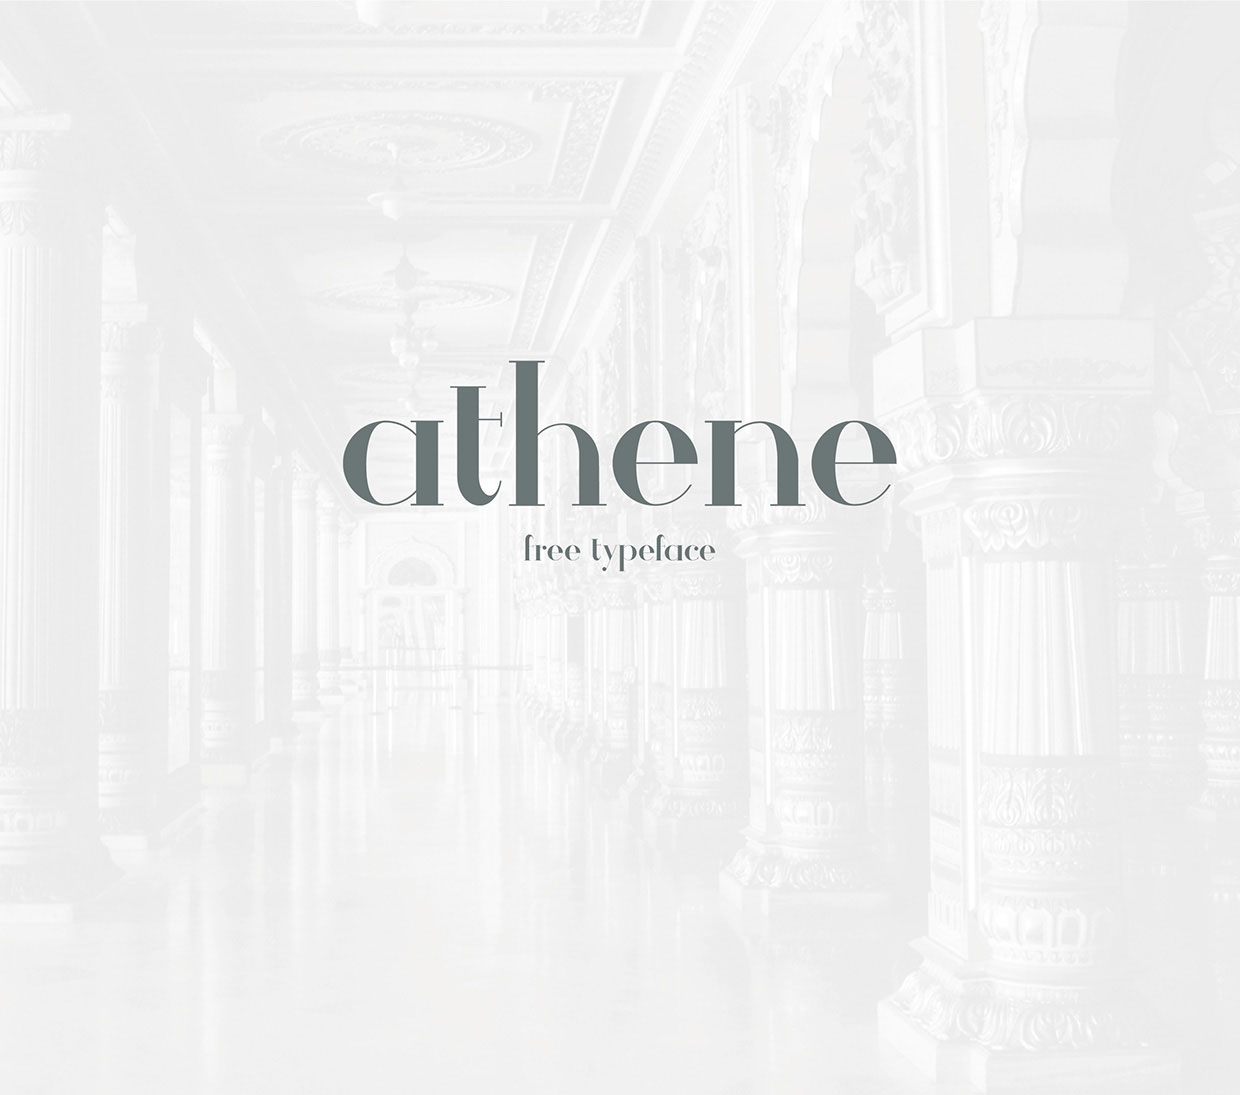 athene-best-free-logo-fonts-067